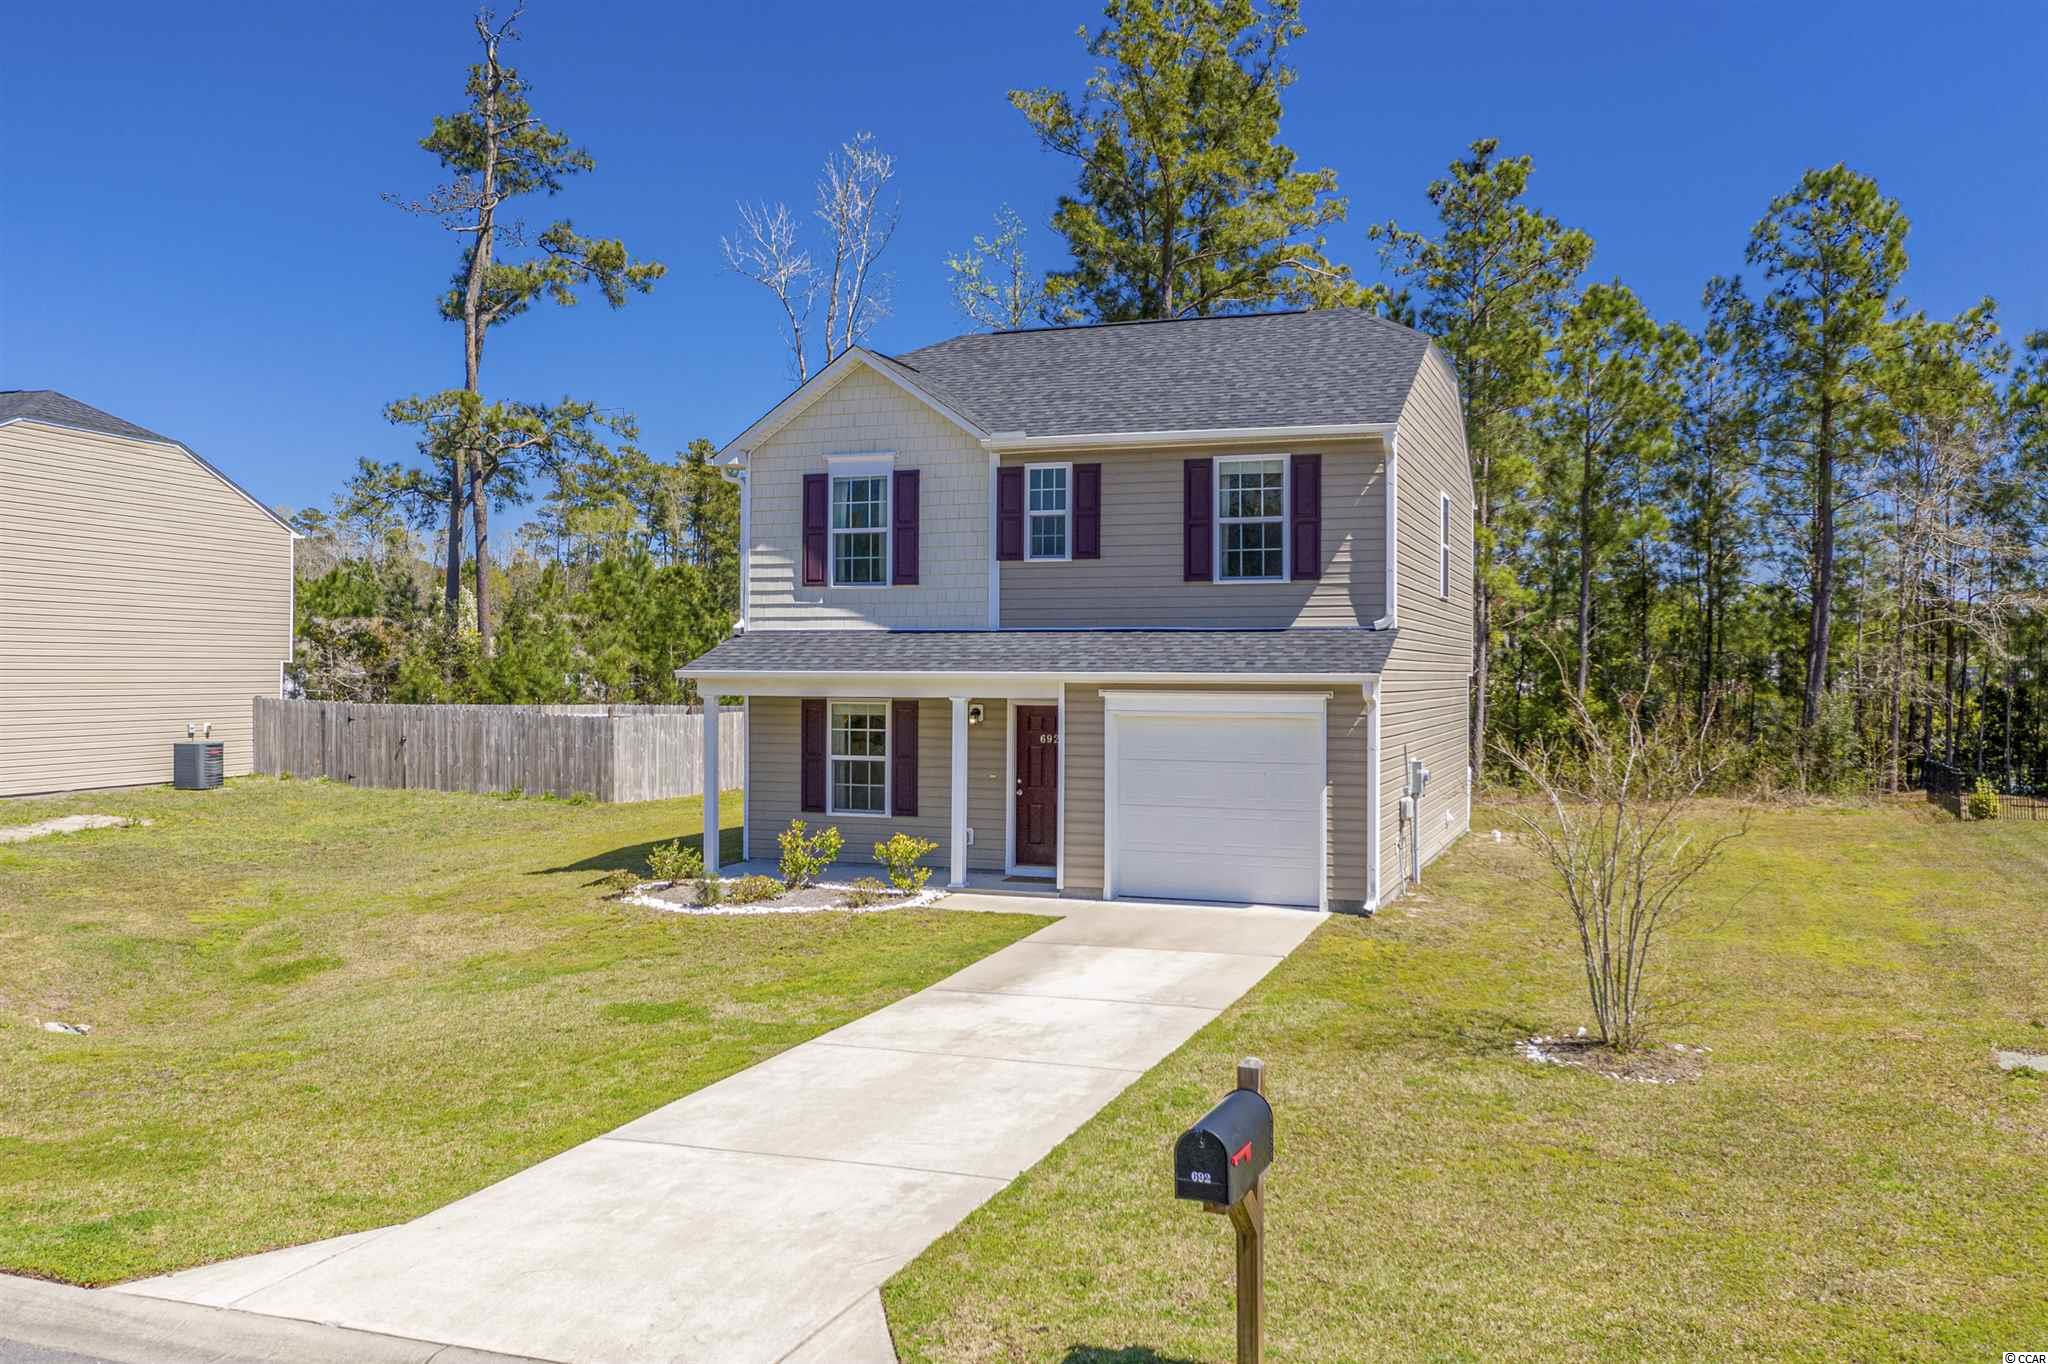 NO HOA!!! Located between North Village and Carolina Crossing subdivisions, this is one of five lots with no HOA! Built in 2018, this 3 bedroom/2 1/2 bath home features upgraded appliances with a gas range, large lot and 2nd floor oversized master bedroom with vaulted ceilings. Minutes to Cherry Grove Beach!!